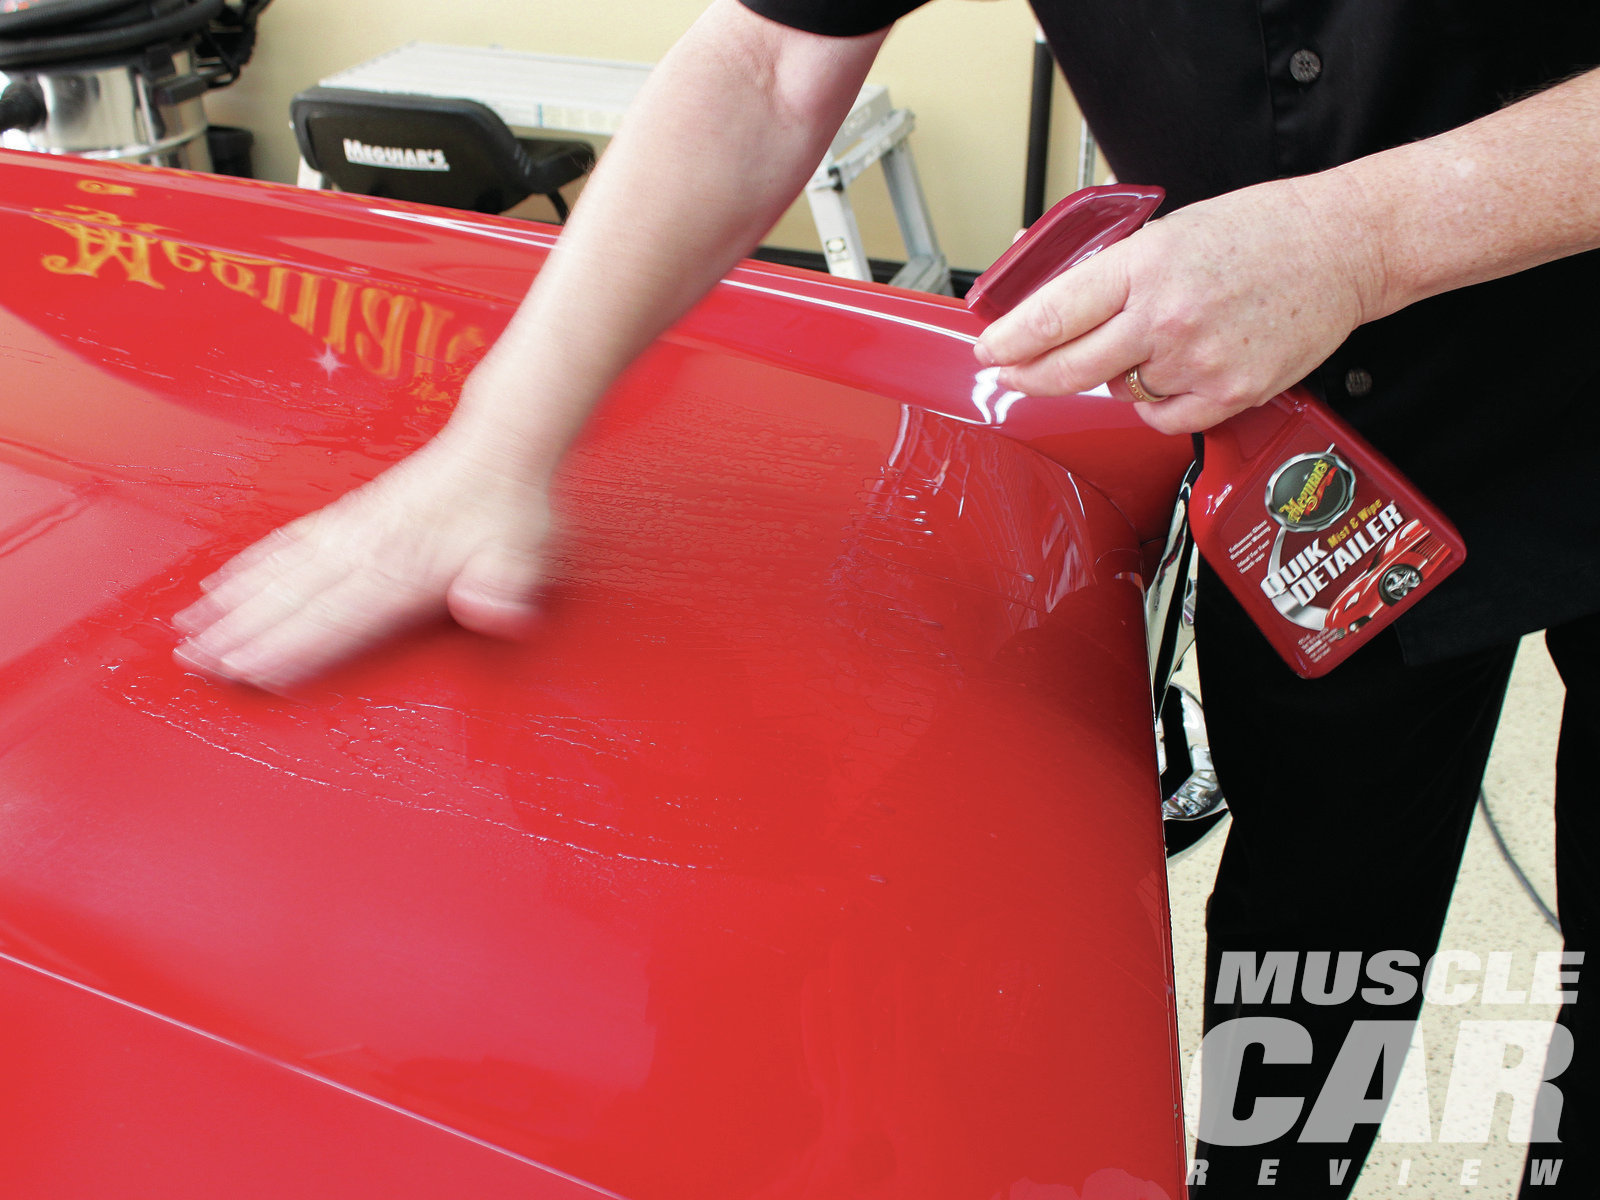 "The two-stage (basecoat/clearcoat) paint on Mick Batson's '67 GTO presented a different scenario. Though it was applied way back in 1986, the Regimental Red finish had great eye appeal, but close inspection revealed some issues in the clearcoat. The panels had a rough feel to them, indicating contaminants were bonded to the paint's surface. These have to come off first so you don't grind them into the paint during subsequent steps. A clay bar skims off those imperfections easily. Use plenty of Quik Detailer to lubricate the clay, and don't rub any harder ""than you would pet your dog,"" said Mike."